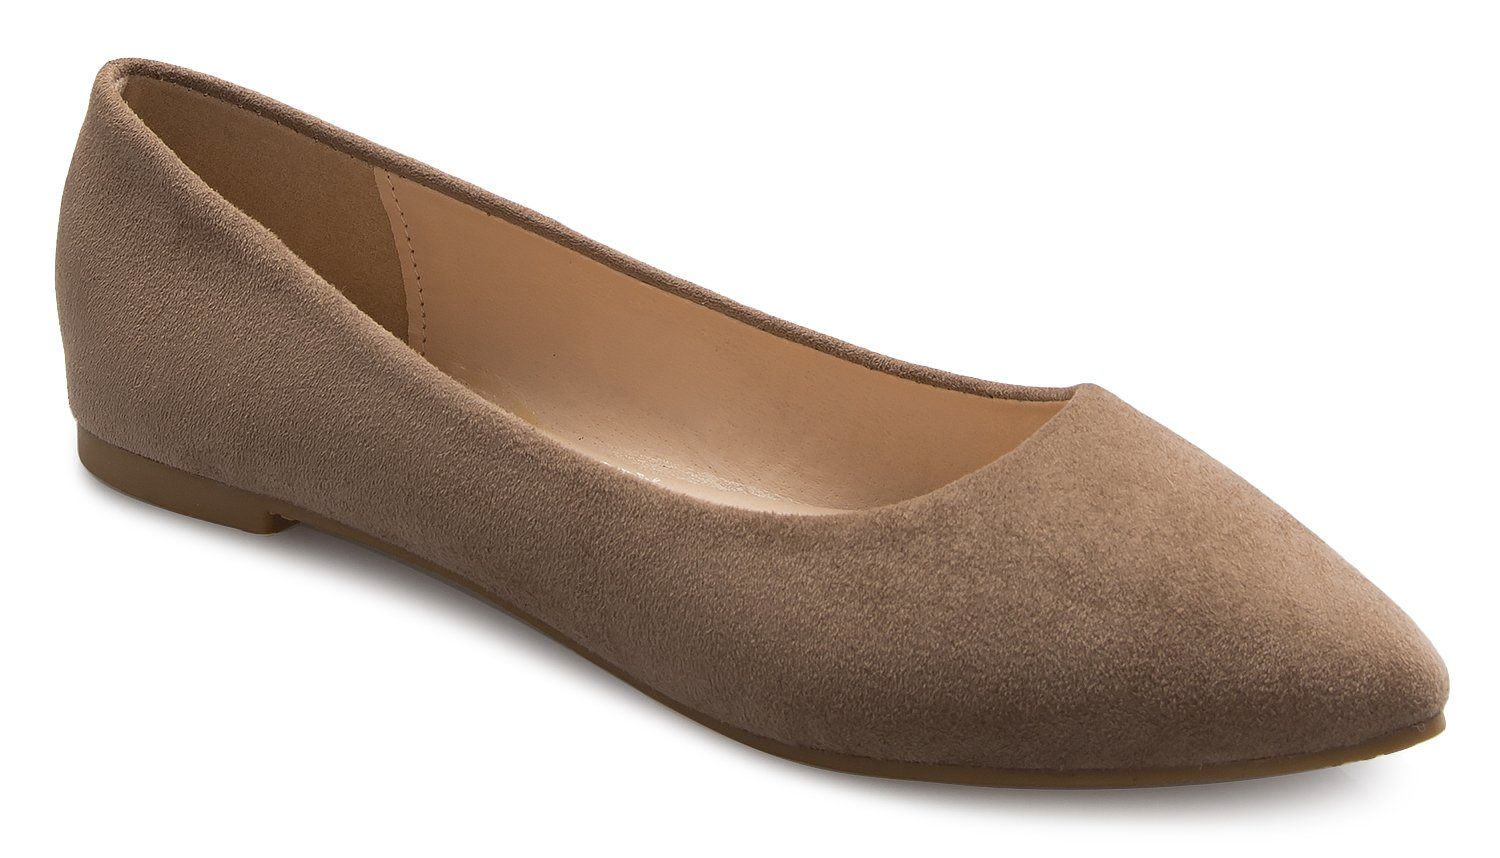 OLIVIA K Women's Pointed-Toe Flat Heel - Slip on Style Casual Comfort Ballet with Soft Suede Patent and Leather